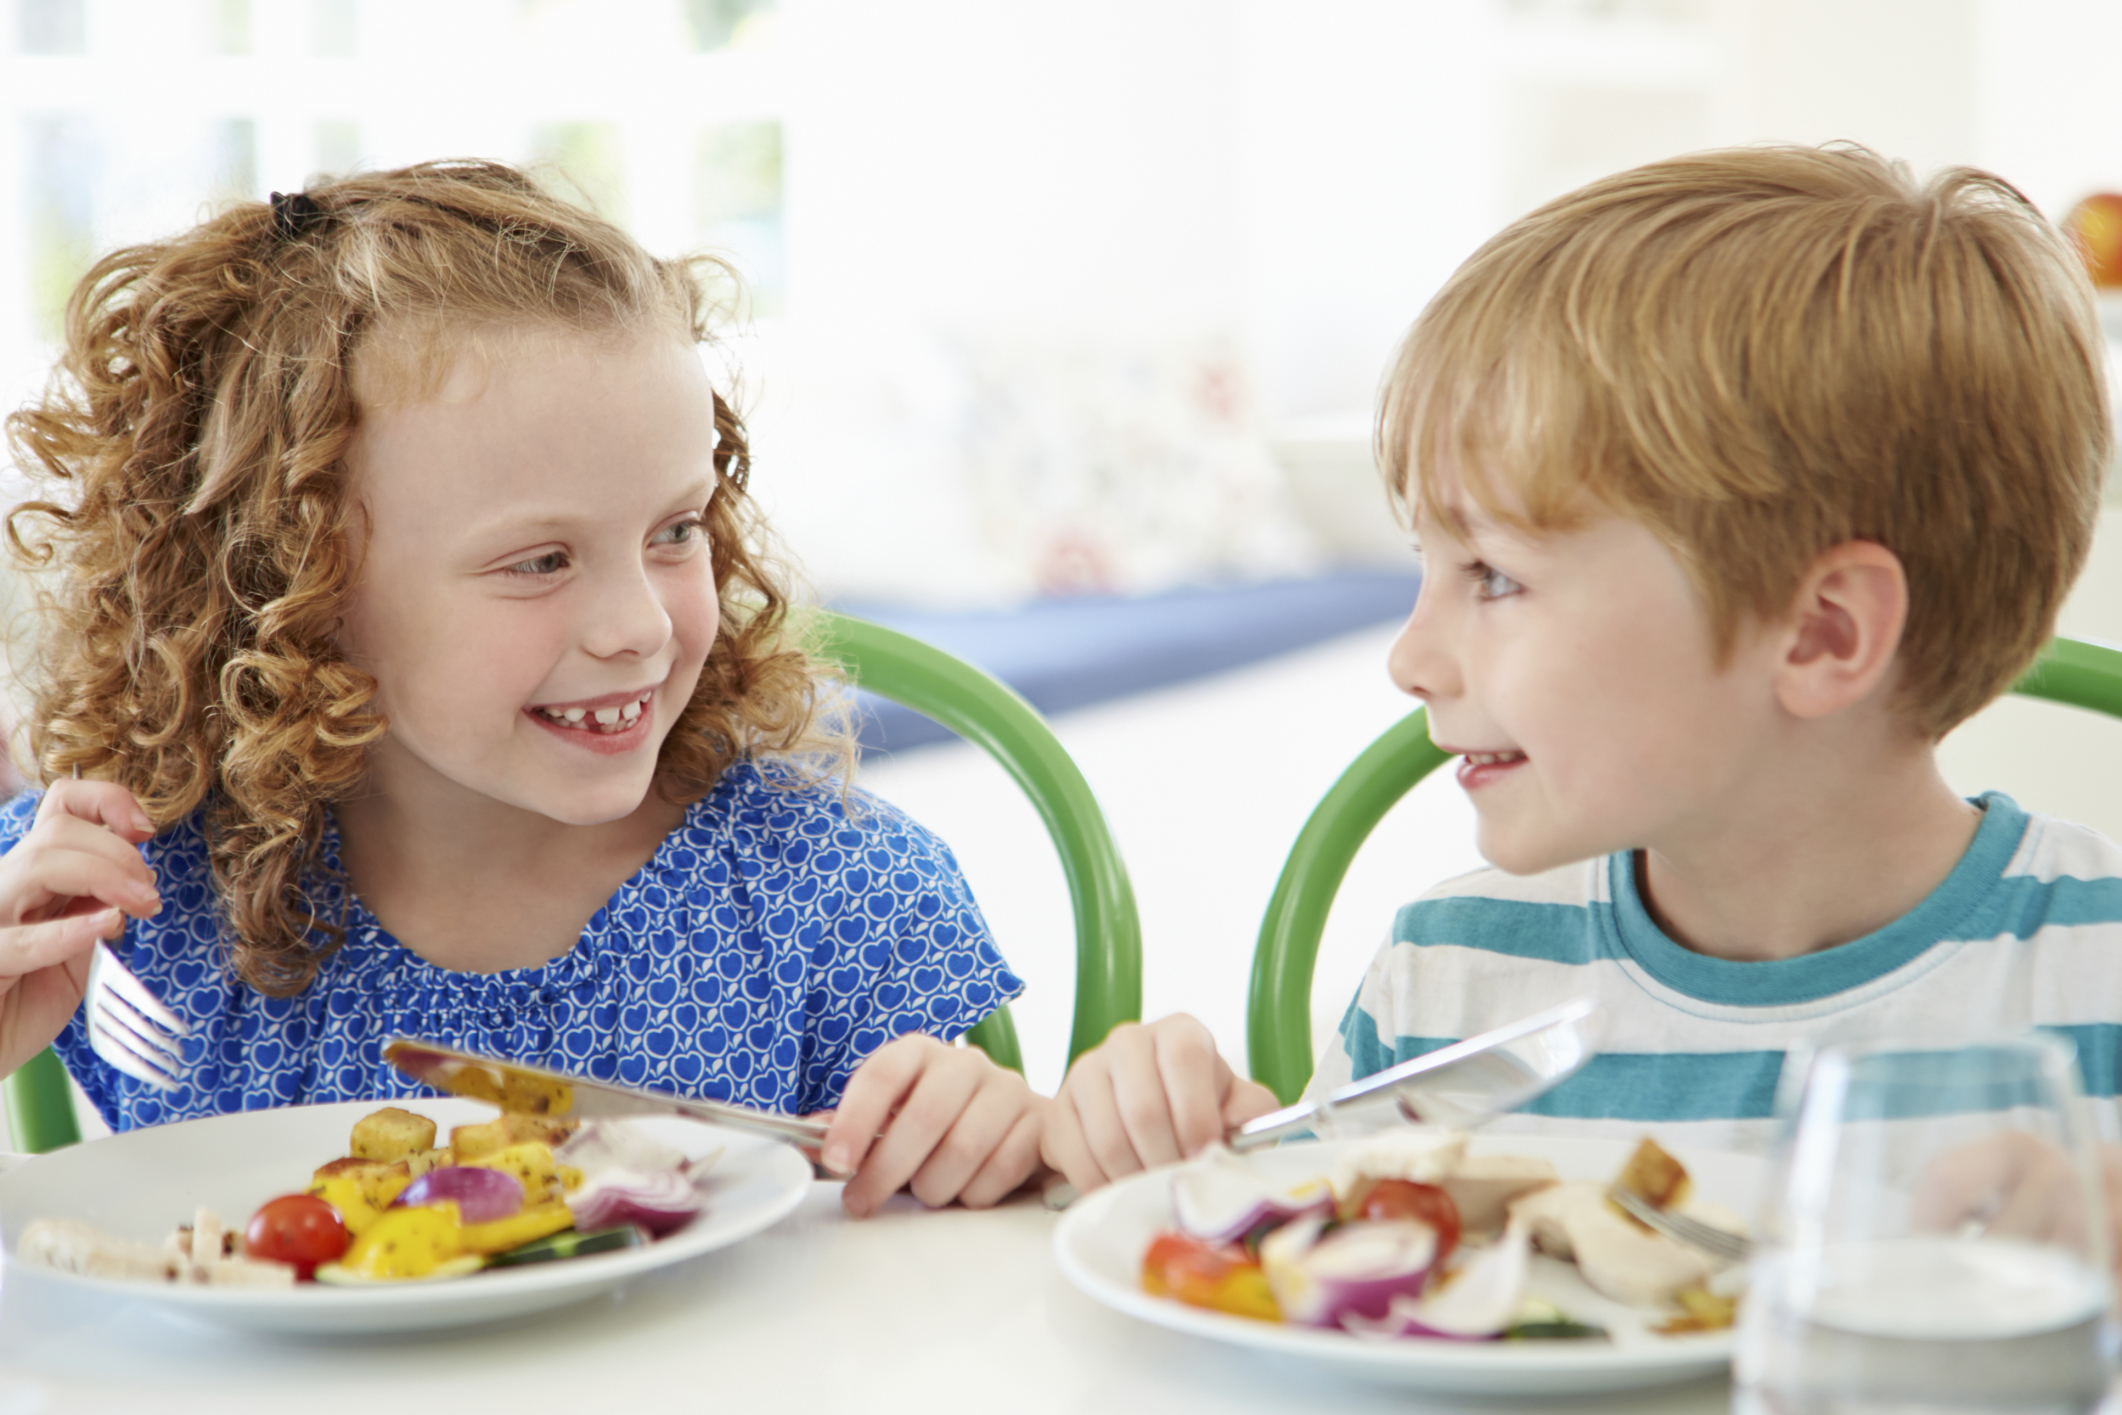 reaction of moral development Preconventional the preconventional level of moral development addresses the earliest reactions that children are likely to have to their surroundings and relationships.